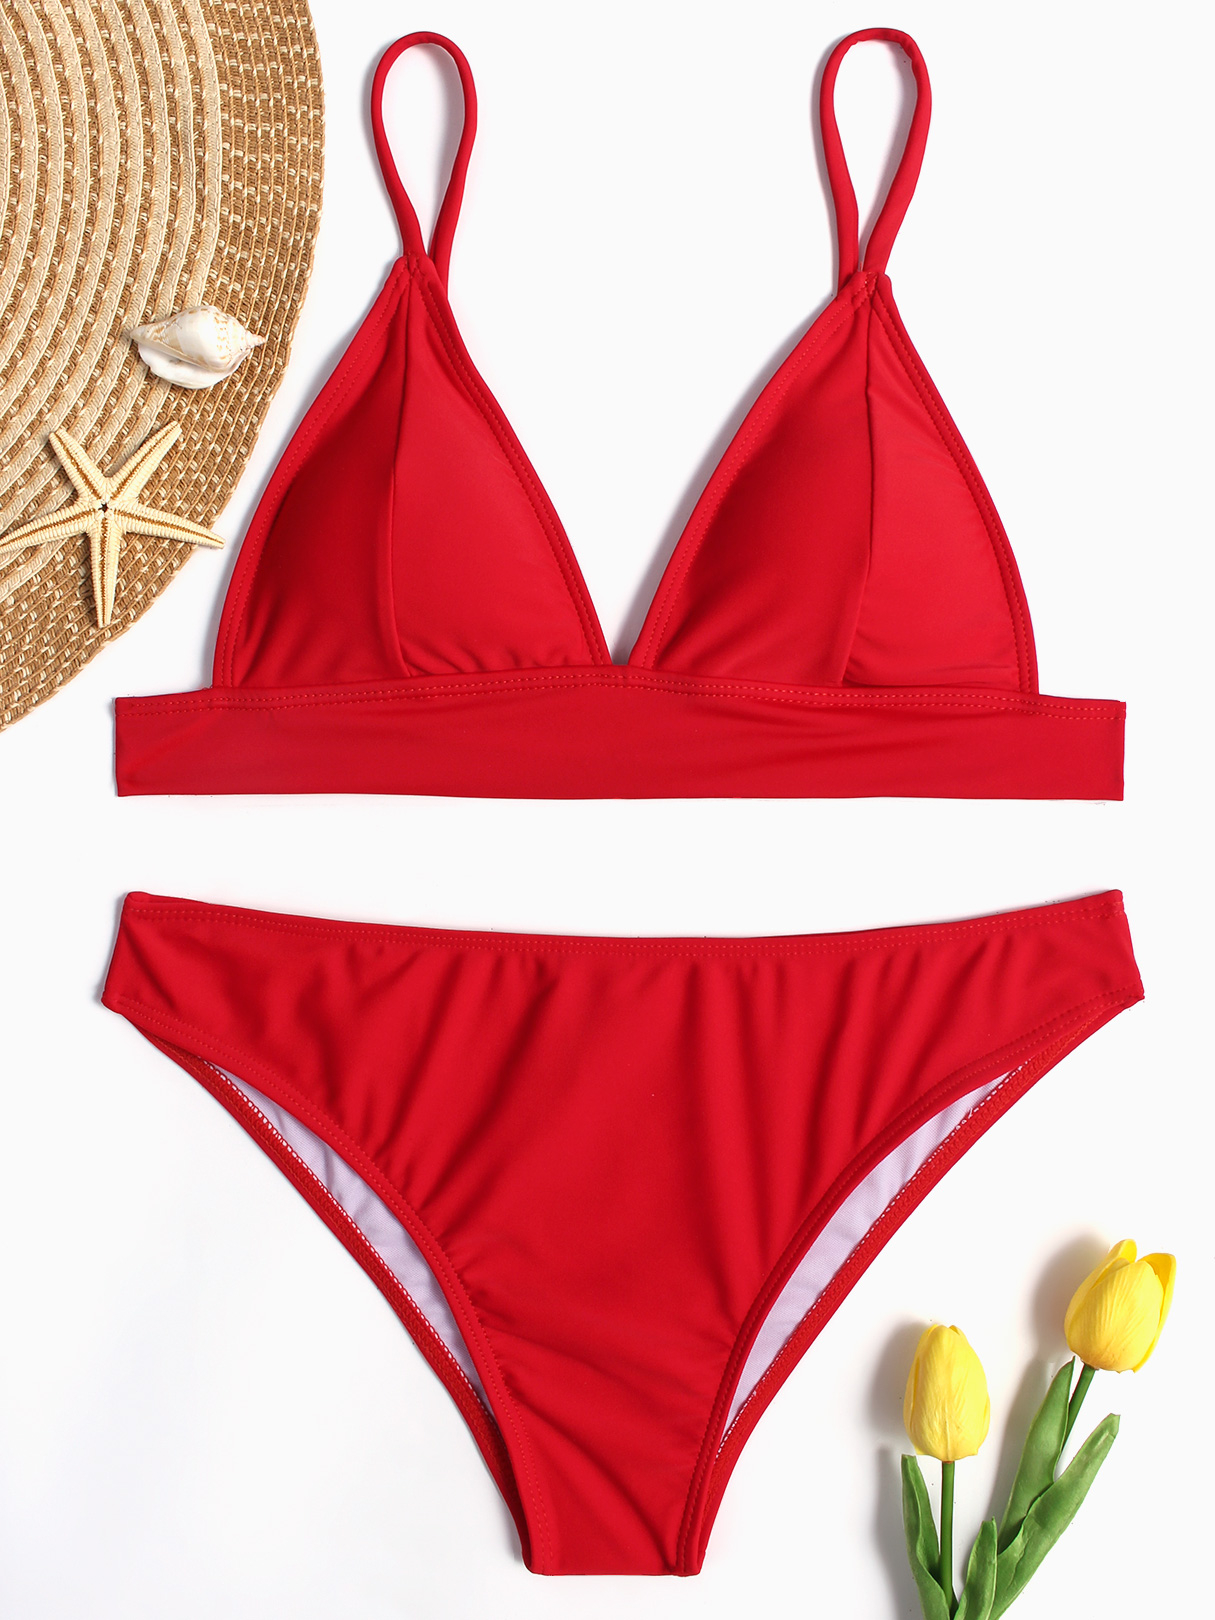 Red Sexy Simply Minimal Bikini Set simply logical – intelligent reasoning by example mac d3